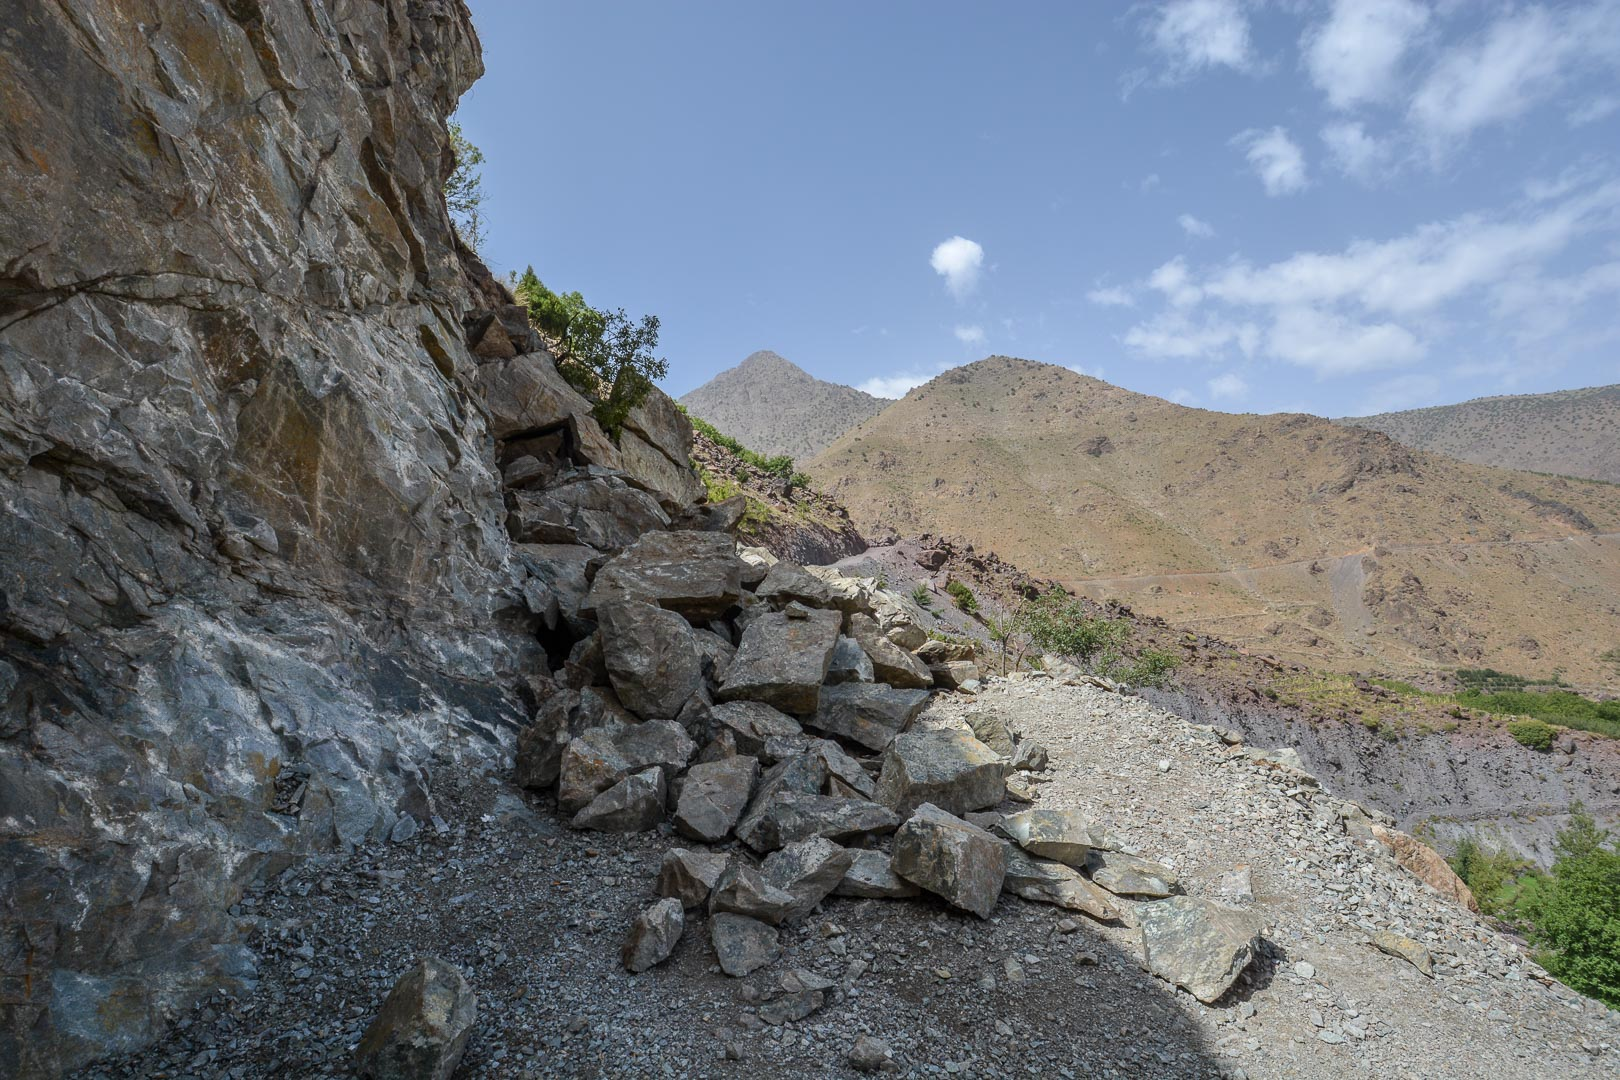 Rockslide blocking our path!